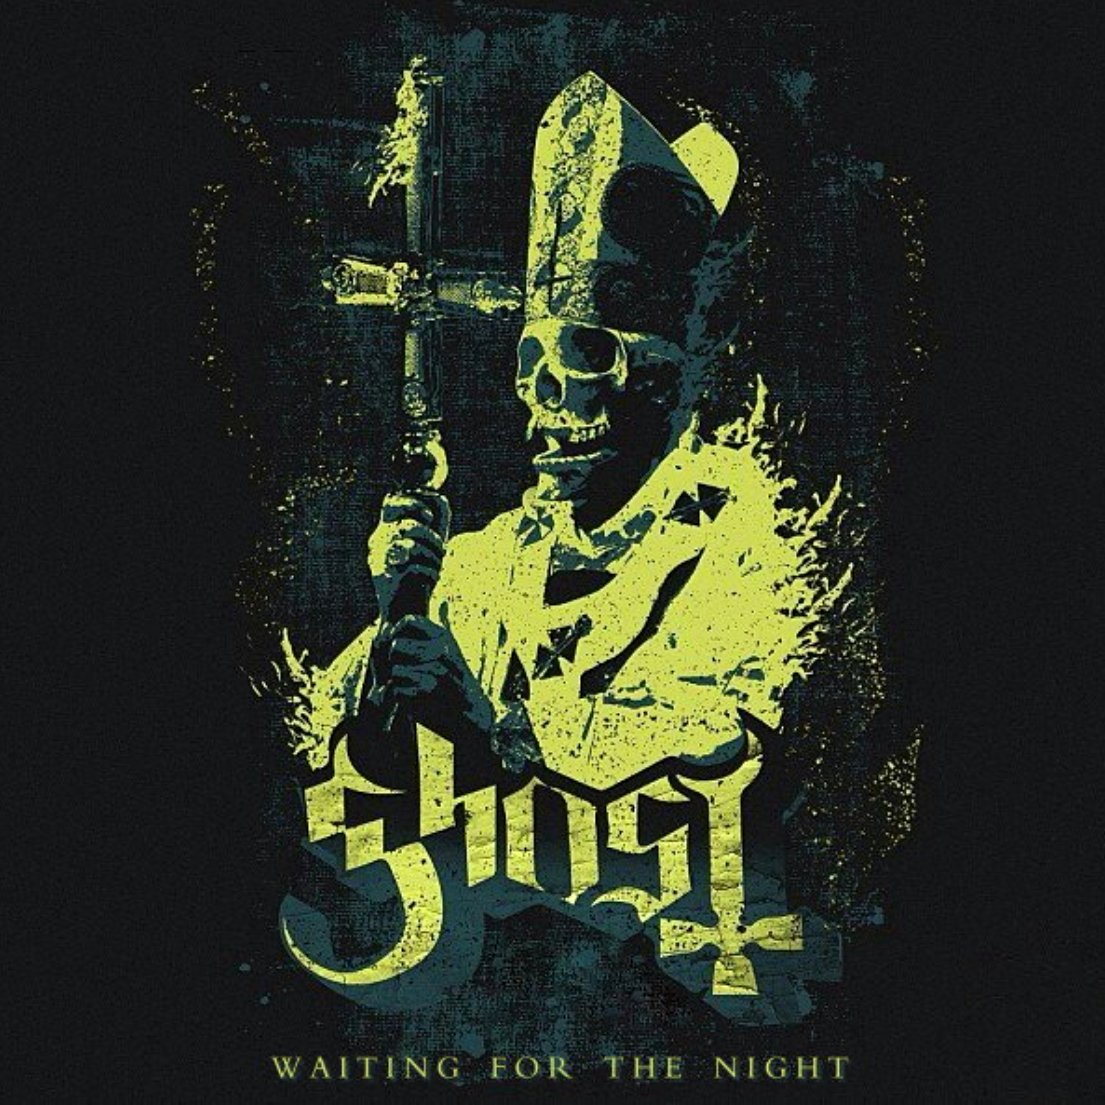 Ghost - Waiting For The Night (Compilation)